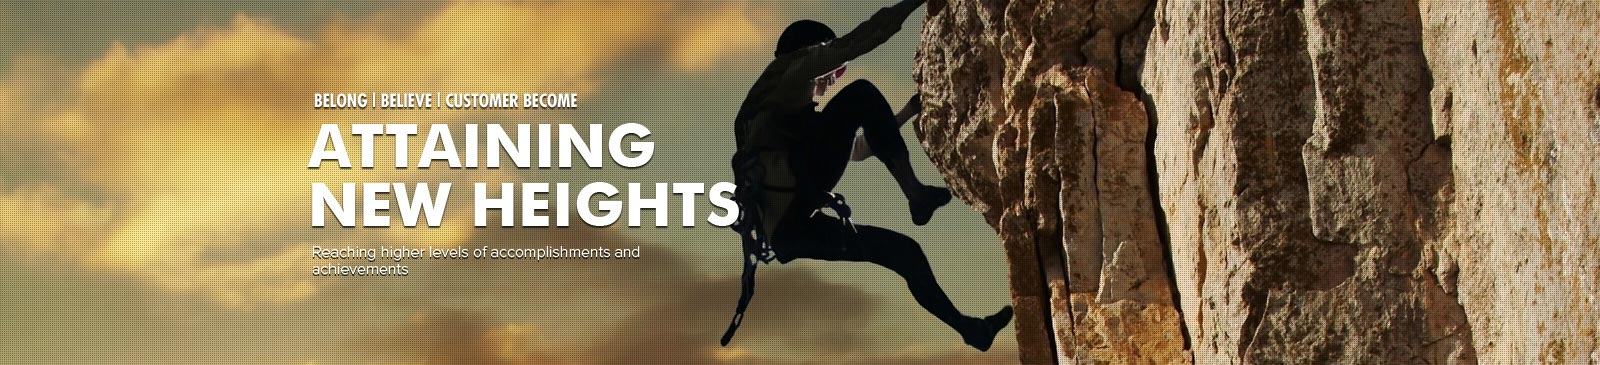 attaining new heights-dottechnologies